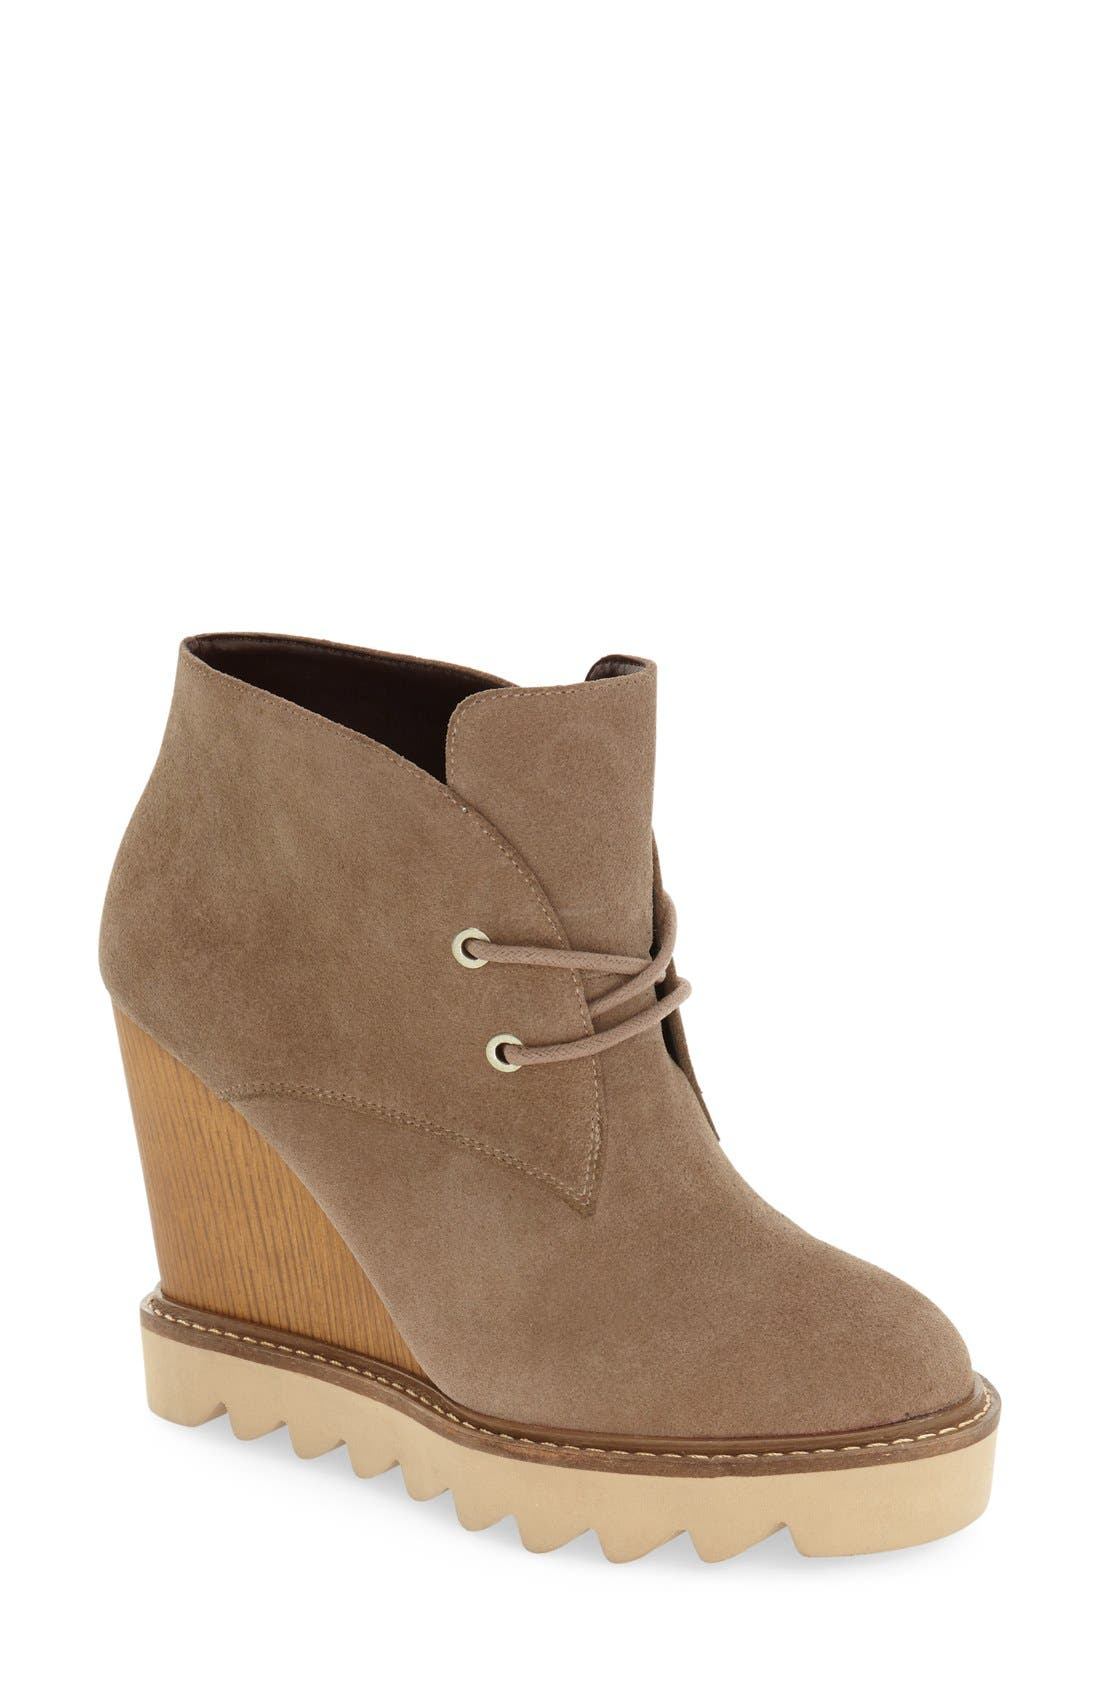 Main Image - BCBGeneration 'Nariska' Wedge Bootie (Women)